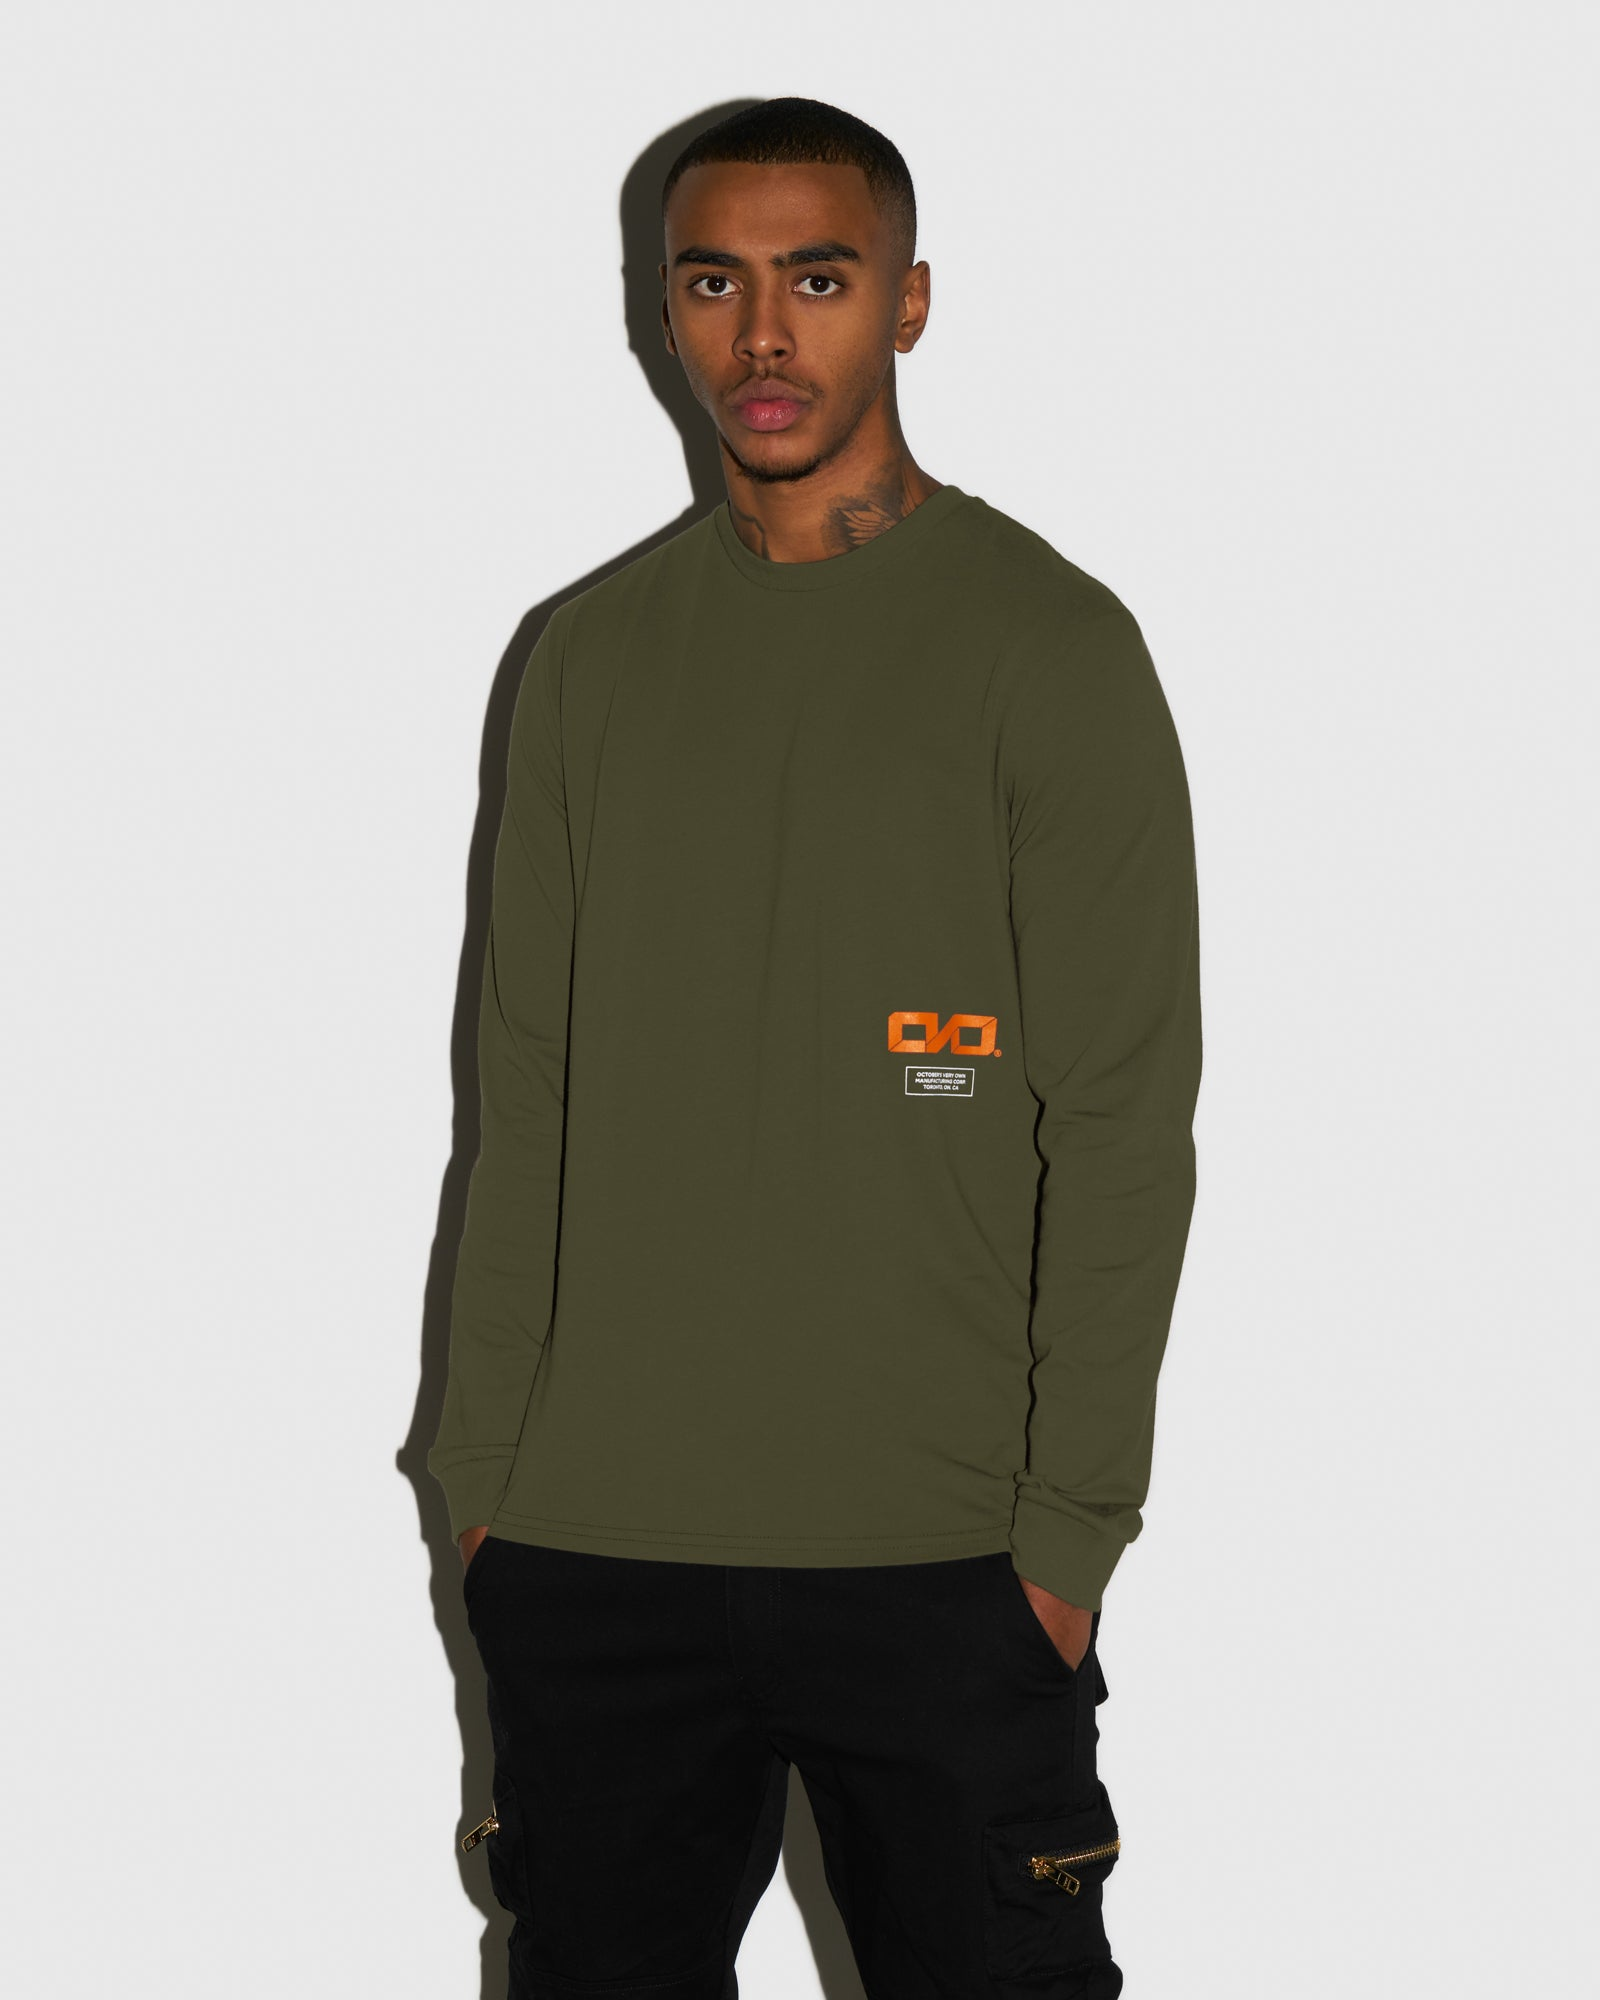 OVO INDUSTRIES LONGSLEEVE T-SHIRT - LEAF GREEN IMAGE #2